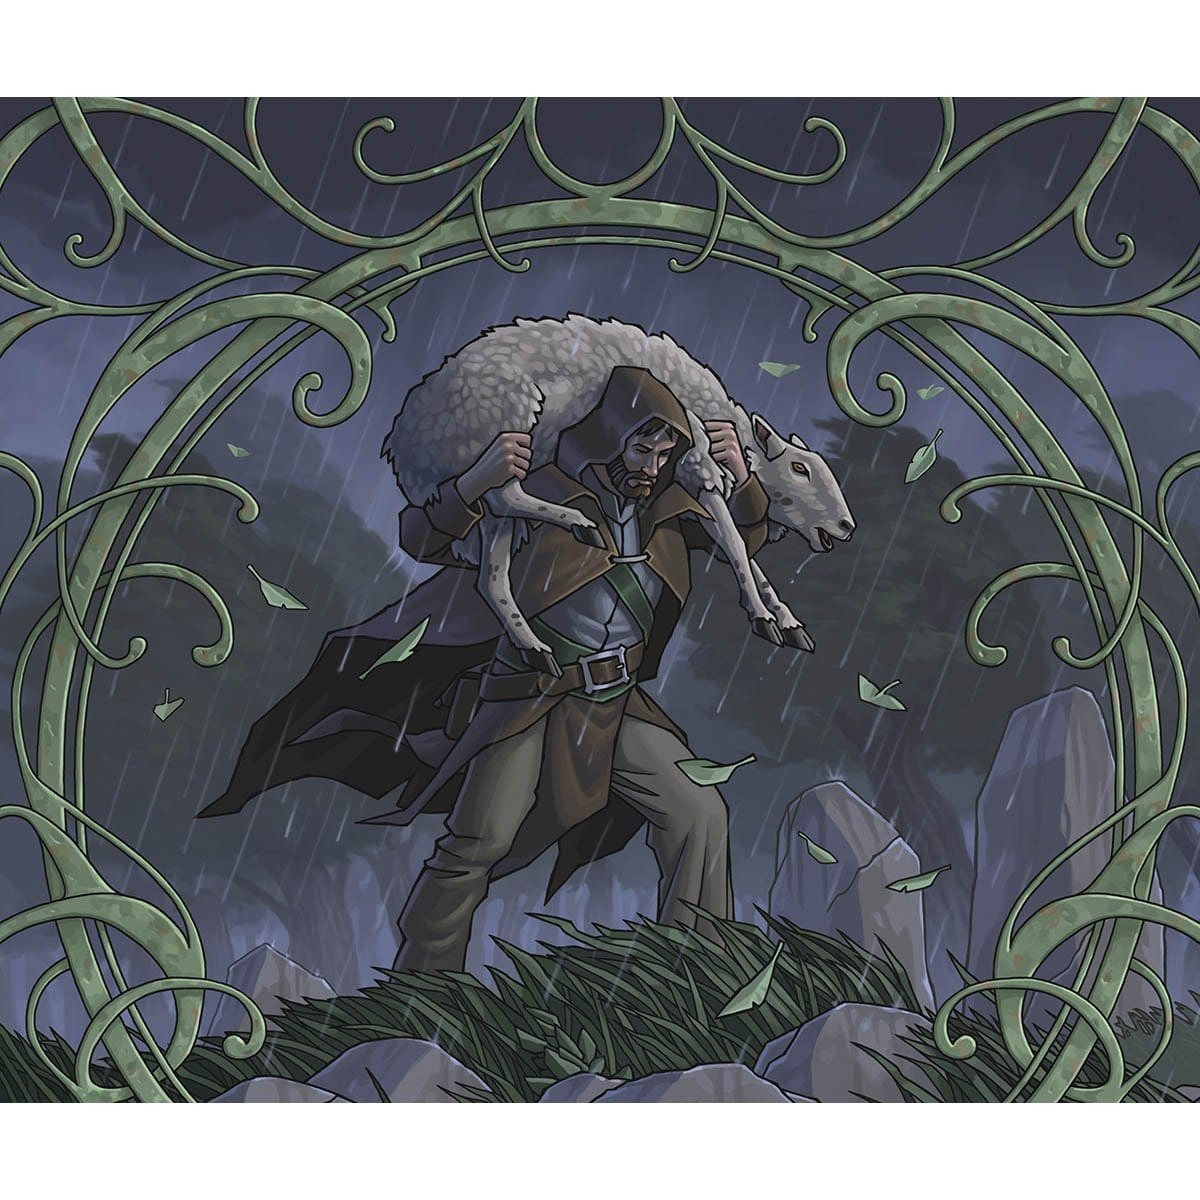 Shepherd of the Flock Print - Print - Original Magic Art - Accessories for Magic the Gathering and other card games